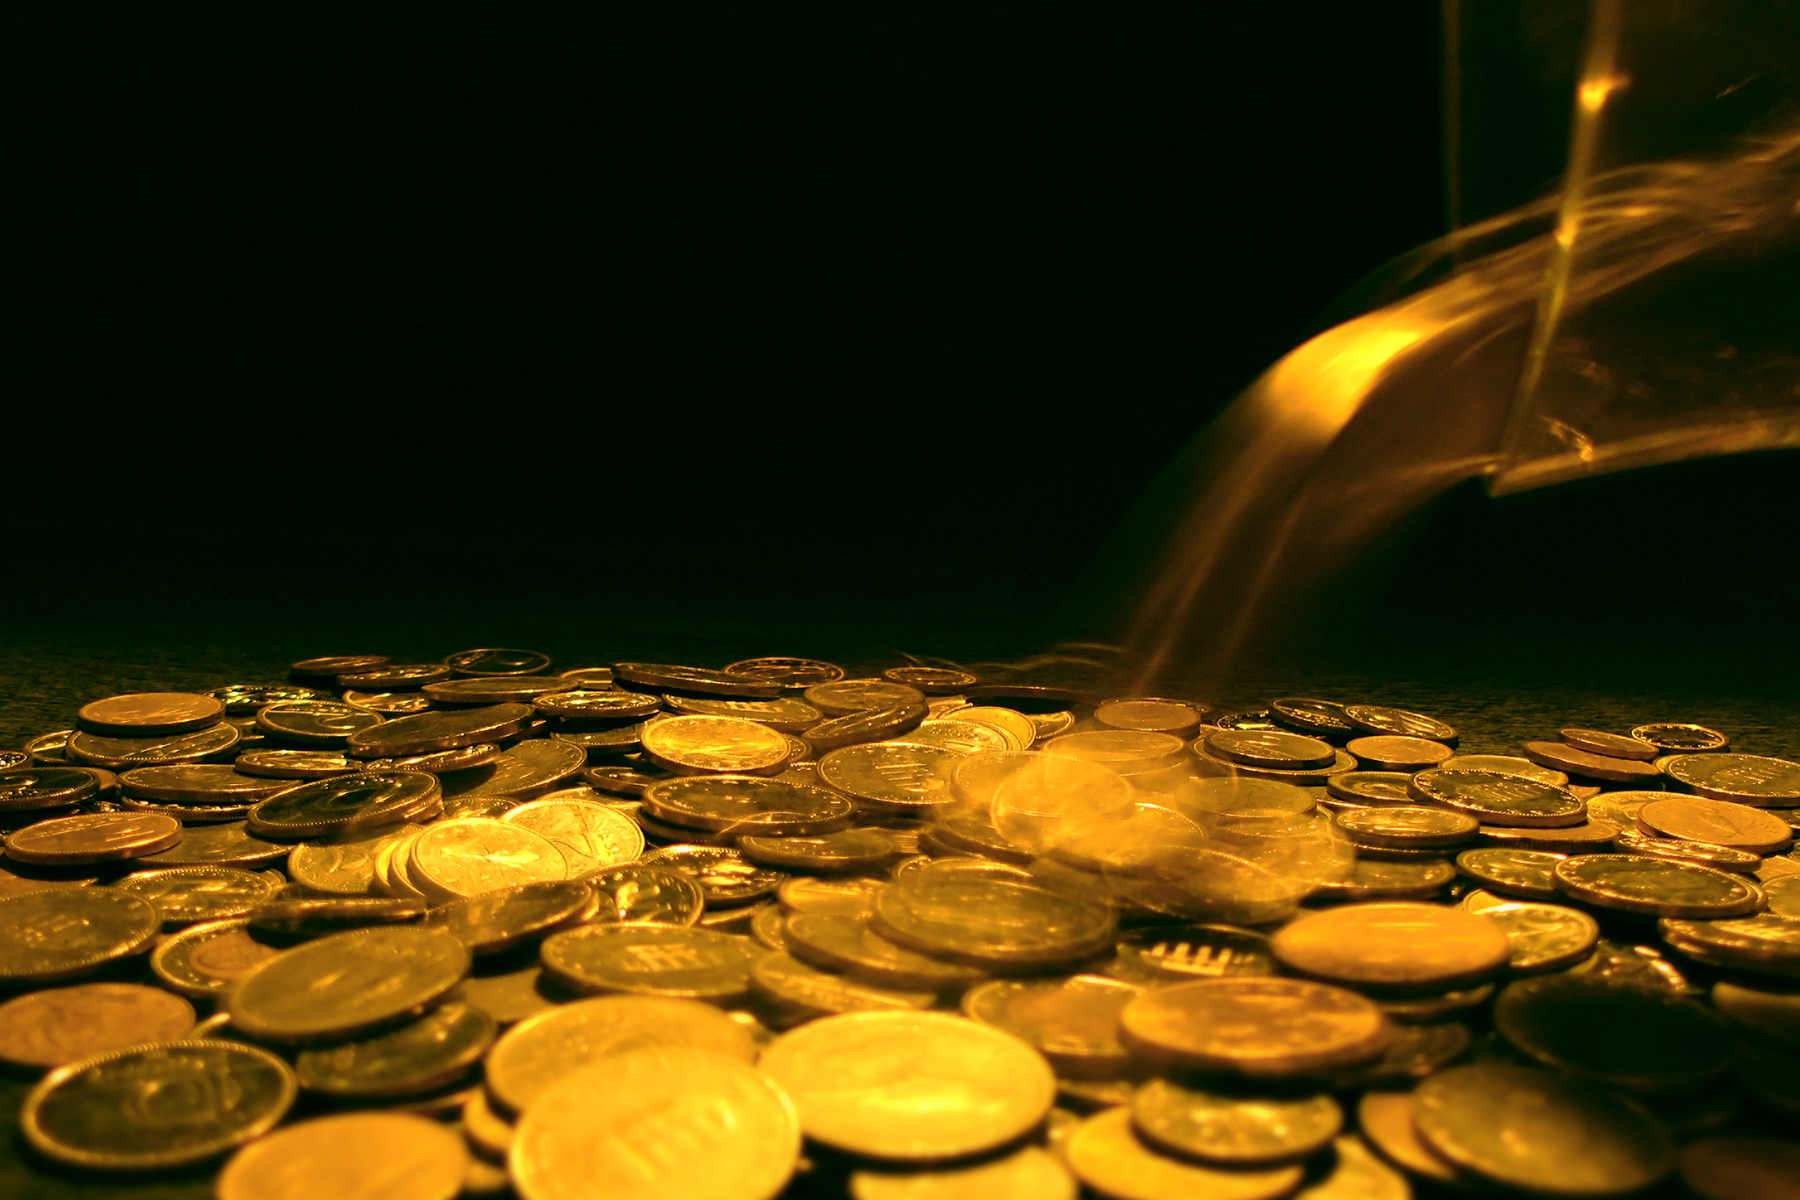 Investment tips to help you beat inflation